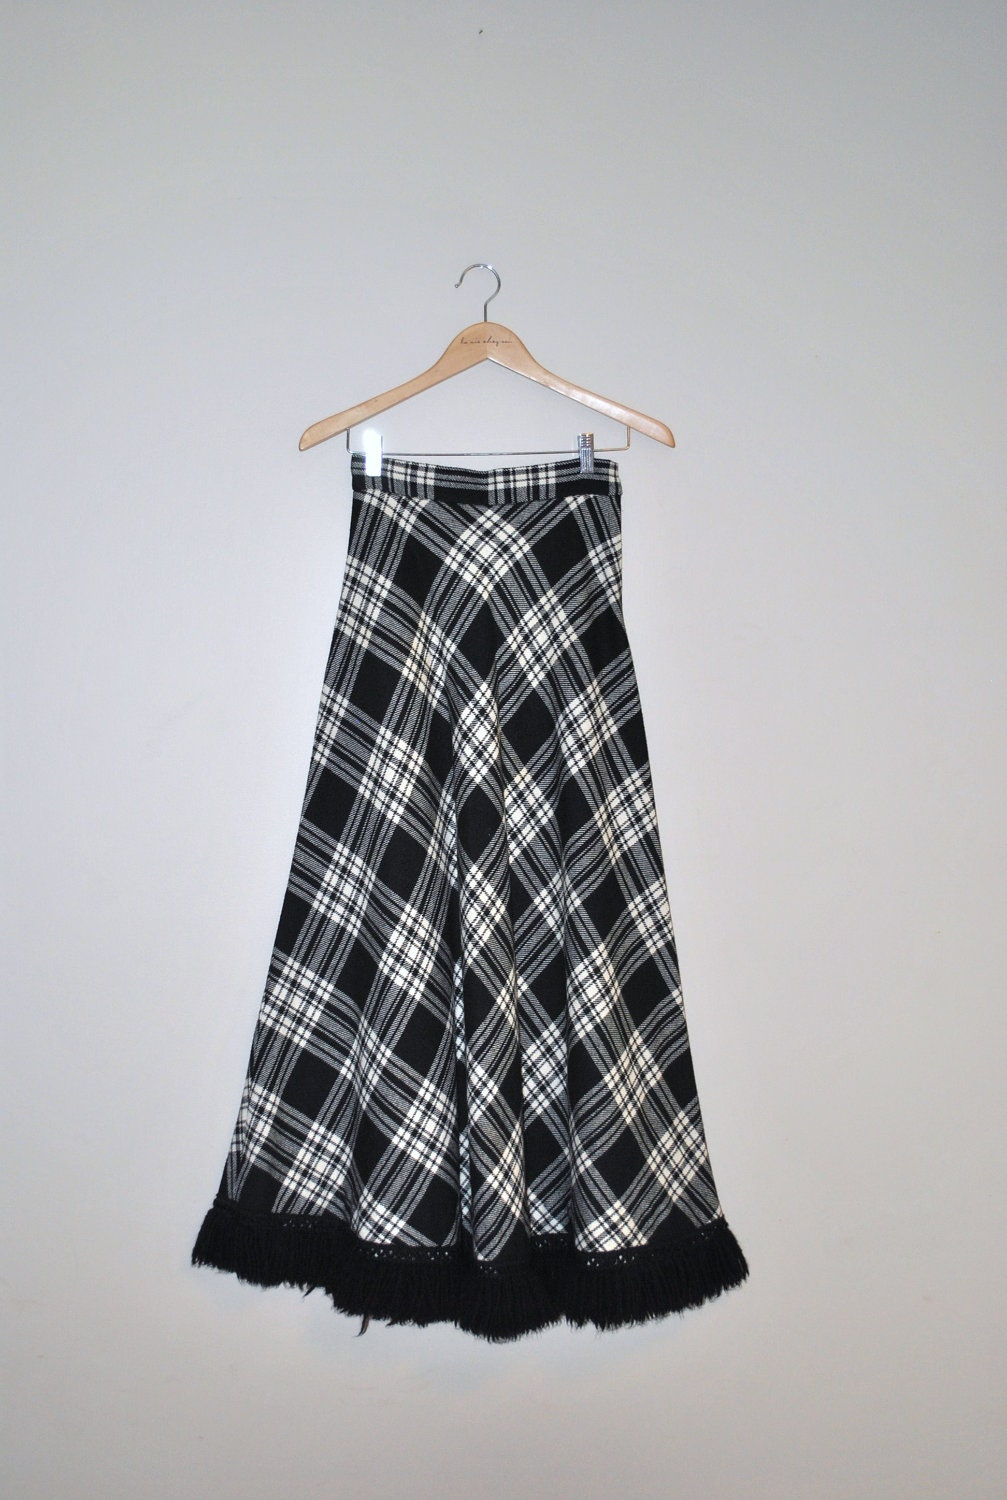 Black and white chevron maxi skirt - The staple maxi skirt! Super cute and comfortable. Black with white chevron stripes. High-waisted but band can be folded over as shown. Stretchy and flowy. Size large. Never worn, no flaws. Message me with questions! Price negotiable.